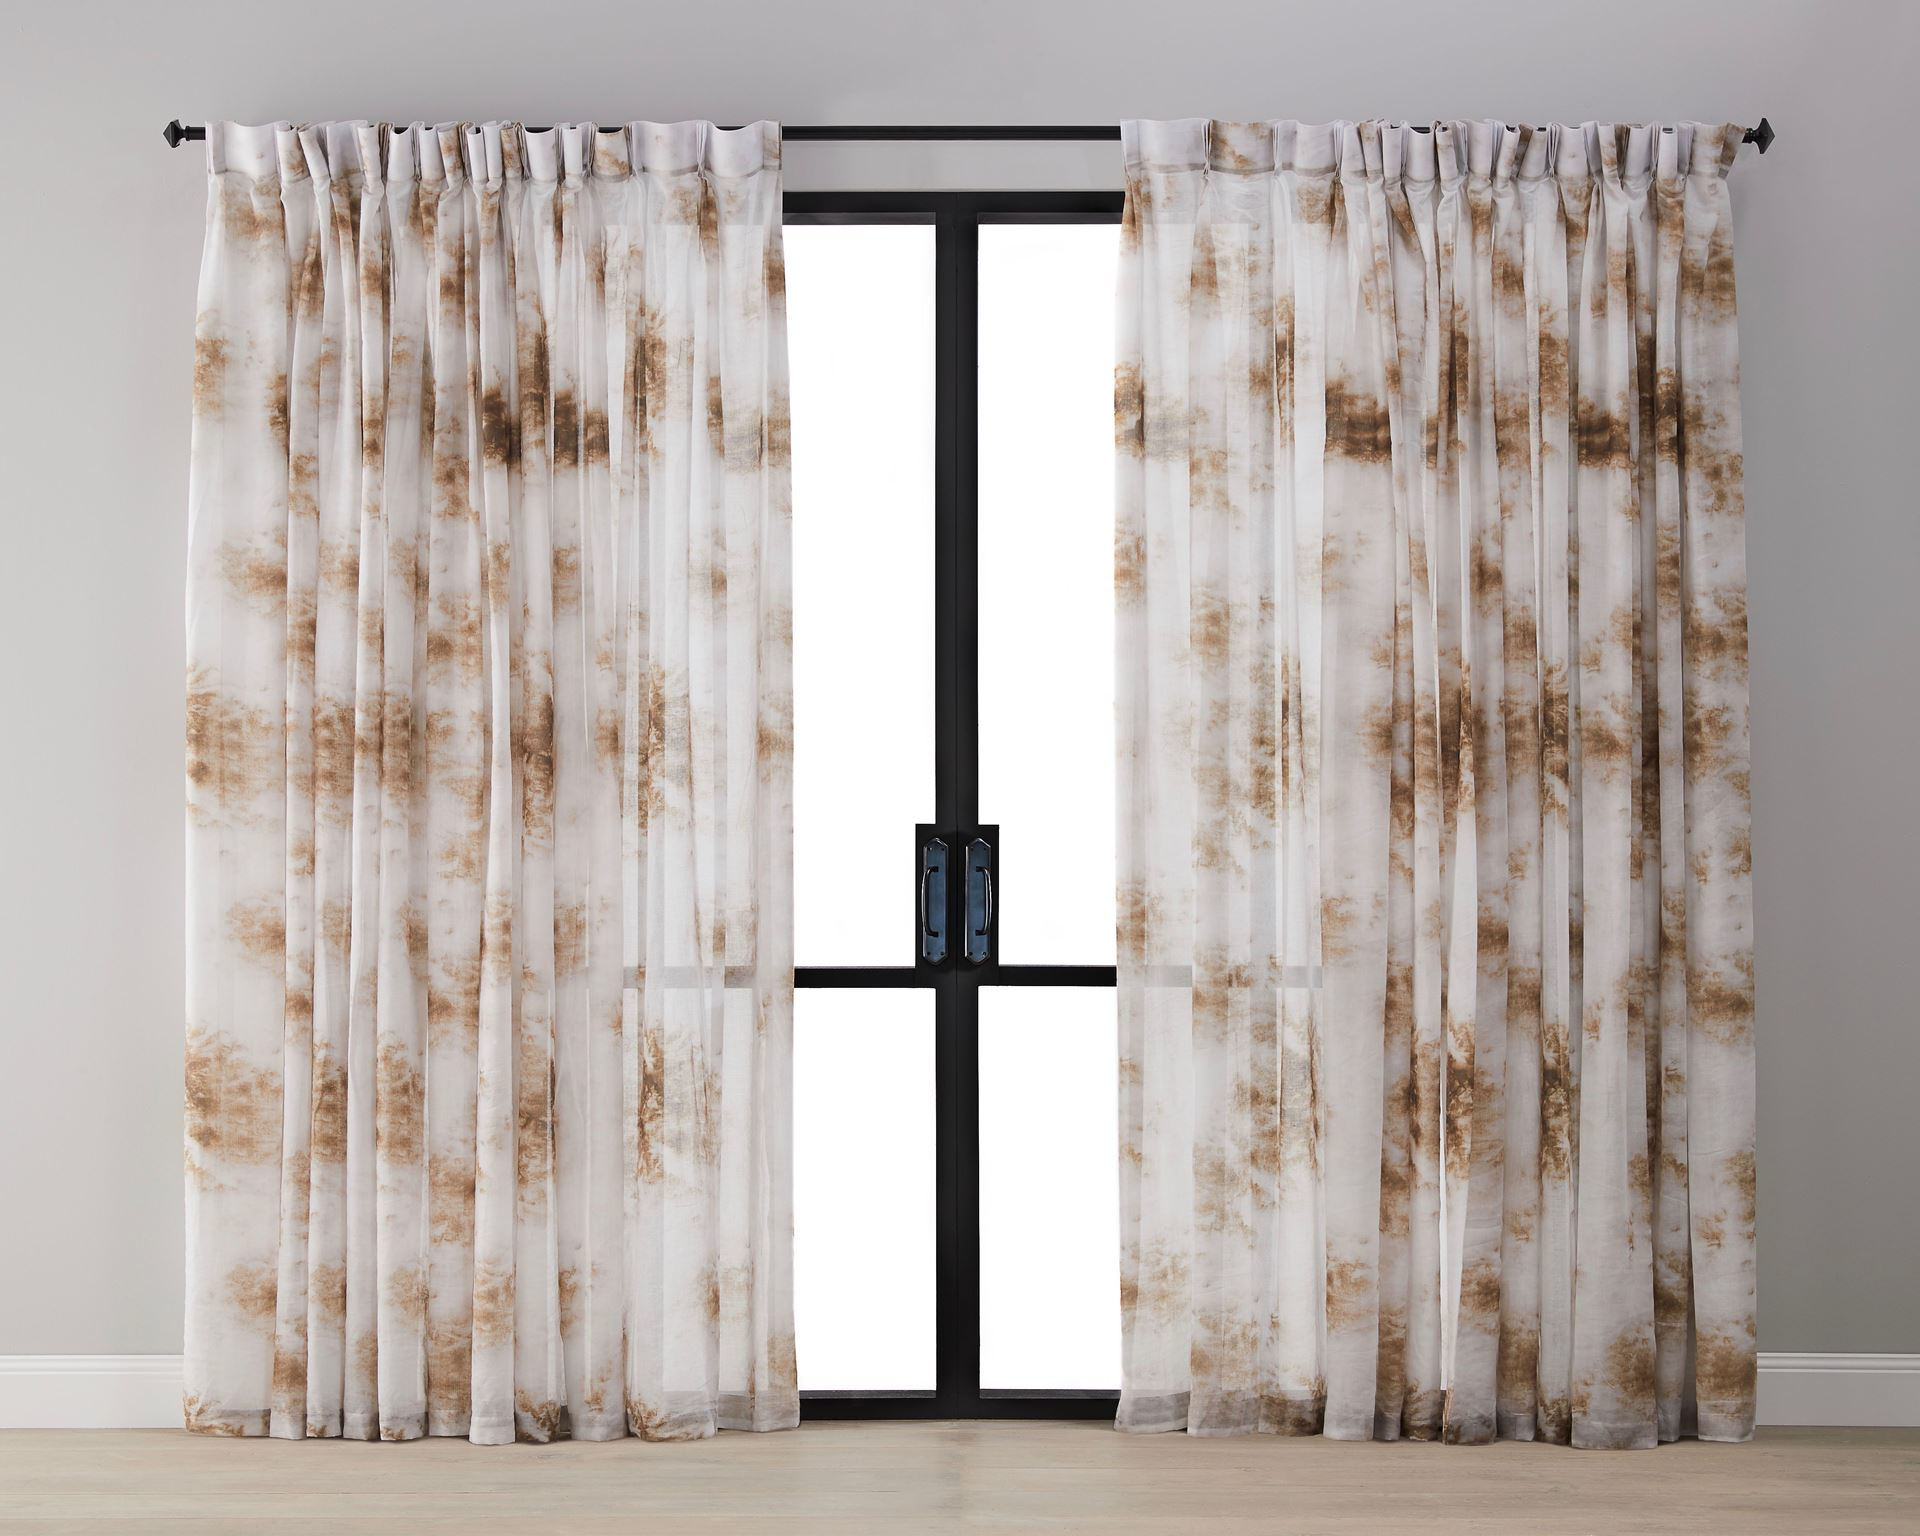 Picture of Cumulus Sheer Curtain - Cinnamon